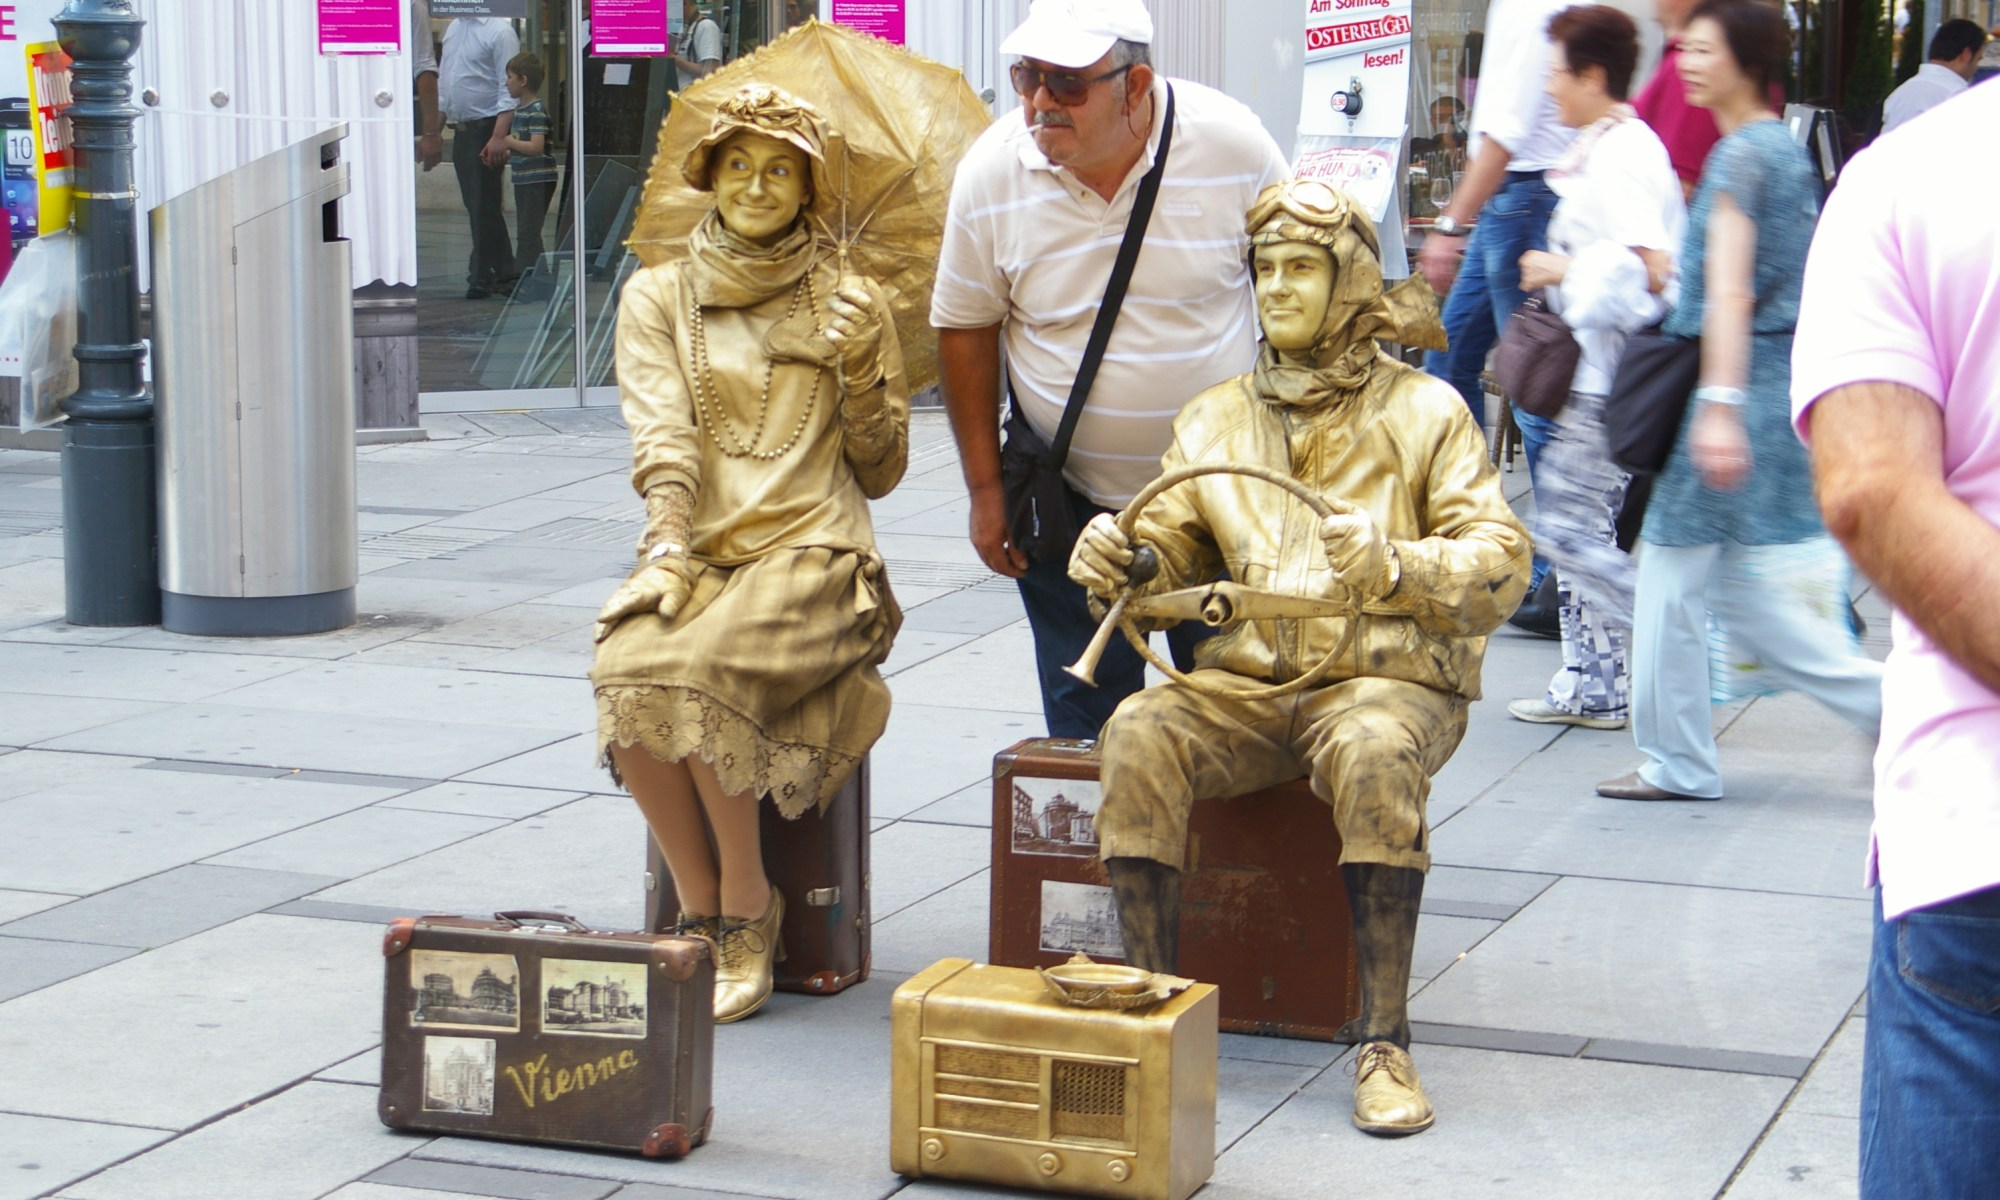 Street artists in Vienna